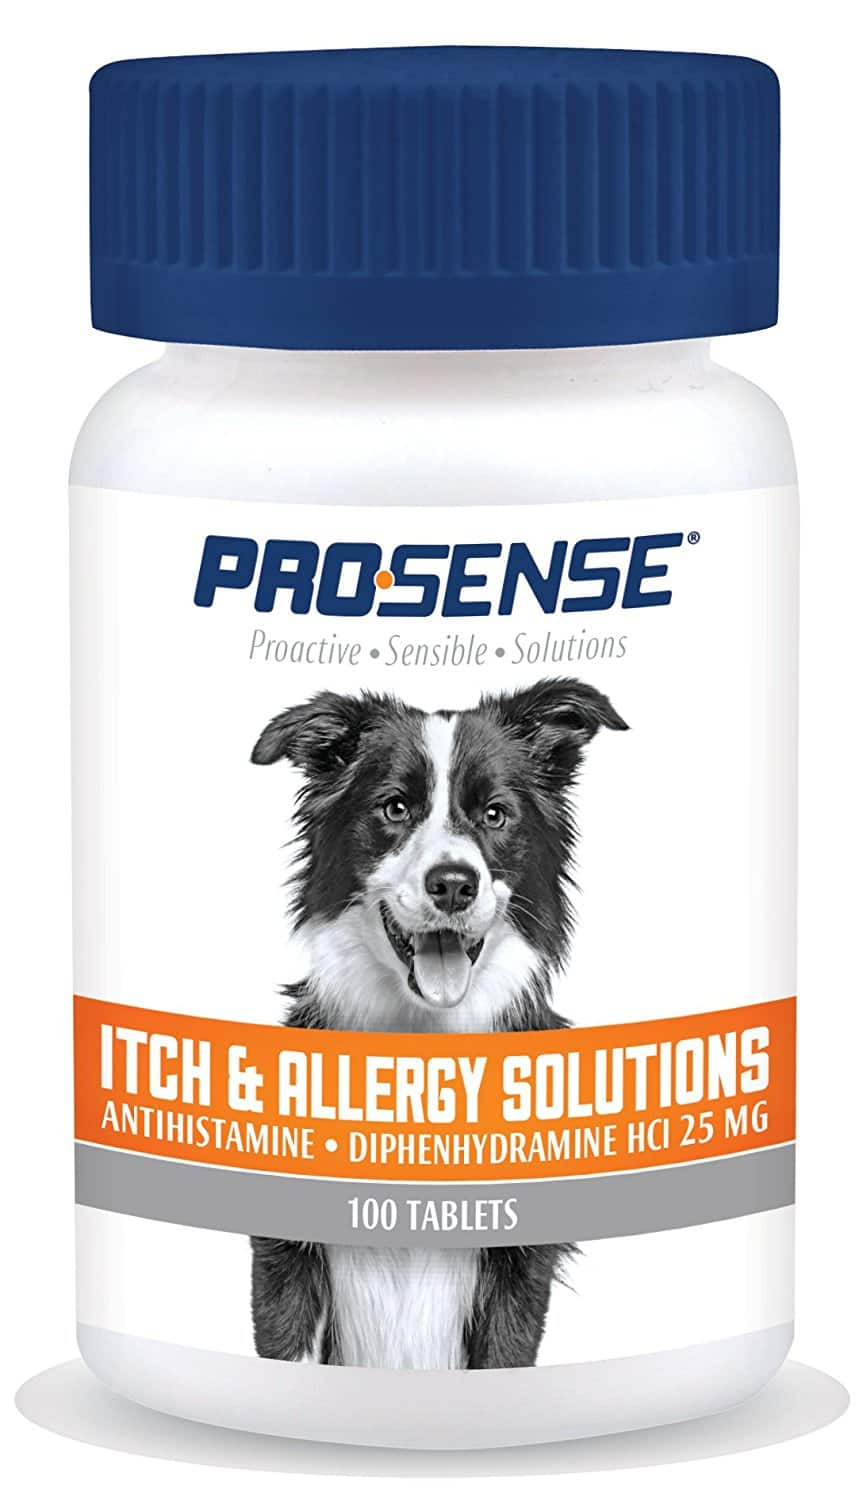 100-Ct Pro-Sense Itch & Allergy Solution Tablets for Dogs $1.55 w/ S&S + Free Shipping